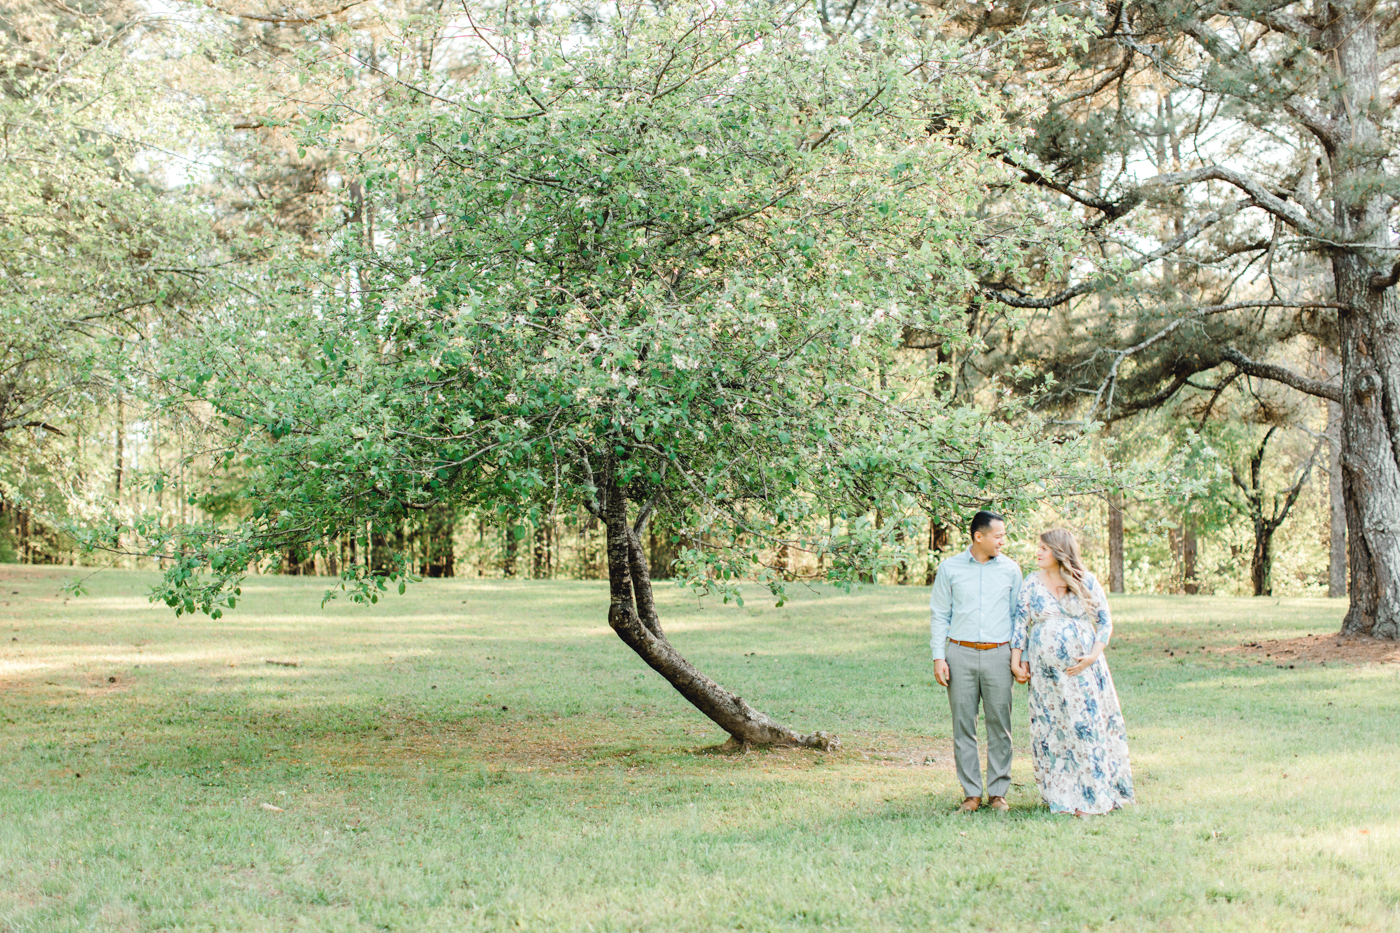 four corners photography atlanta engagement photographer georgia photographer fine art film photographer atlanta natural light photographer newborn photographer family photographer fine art maternity photographer-5.jpg